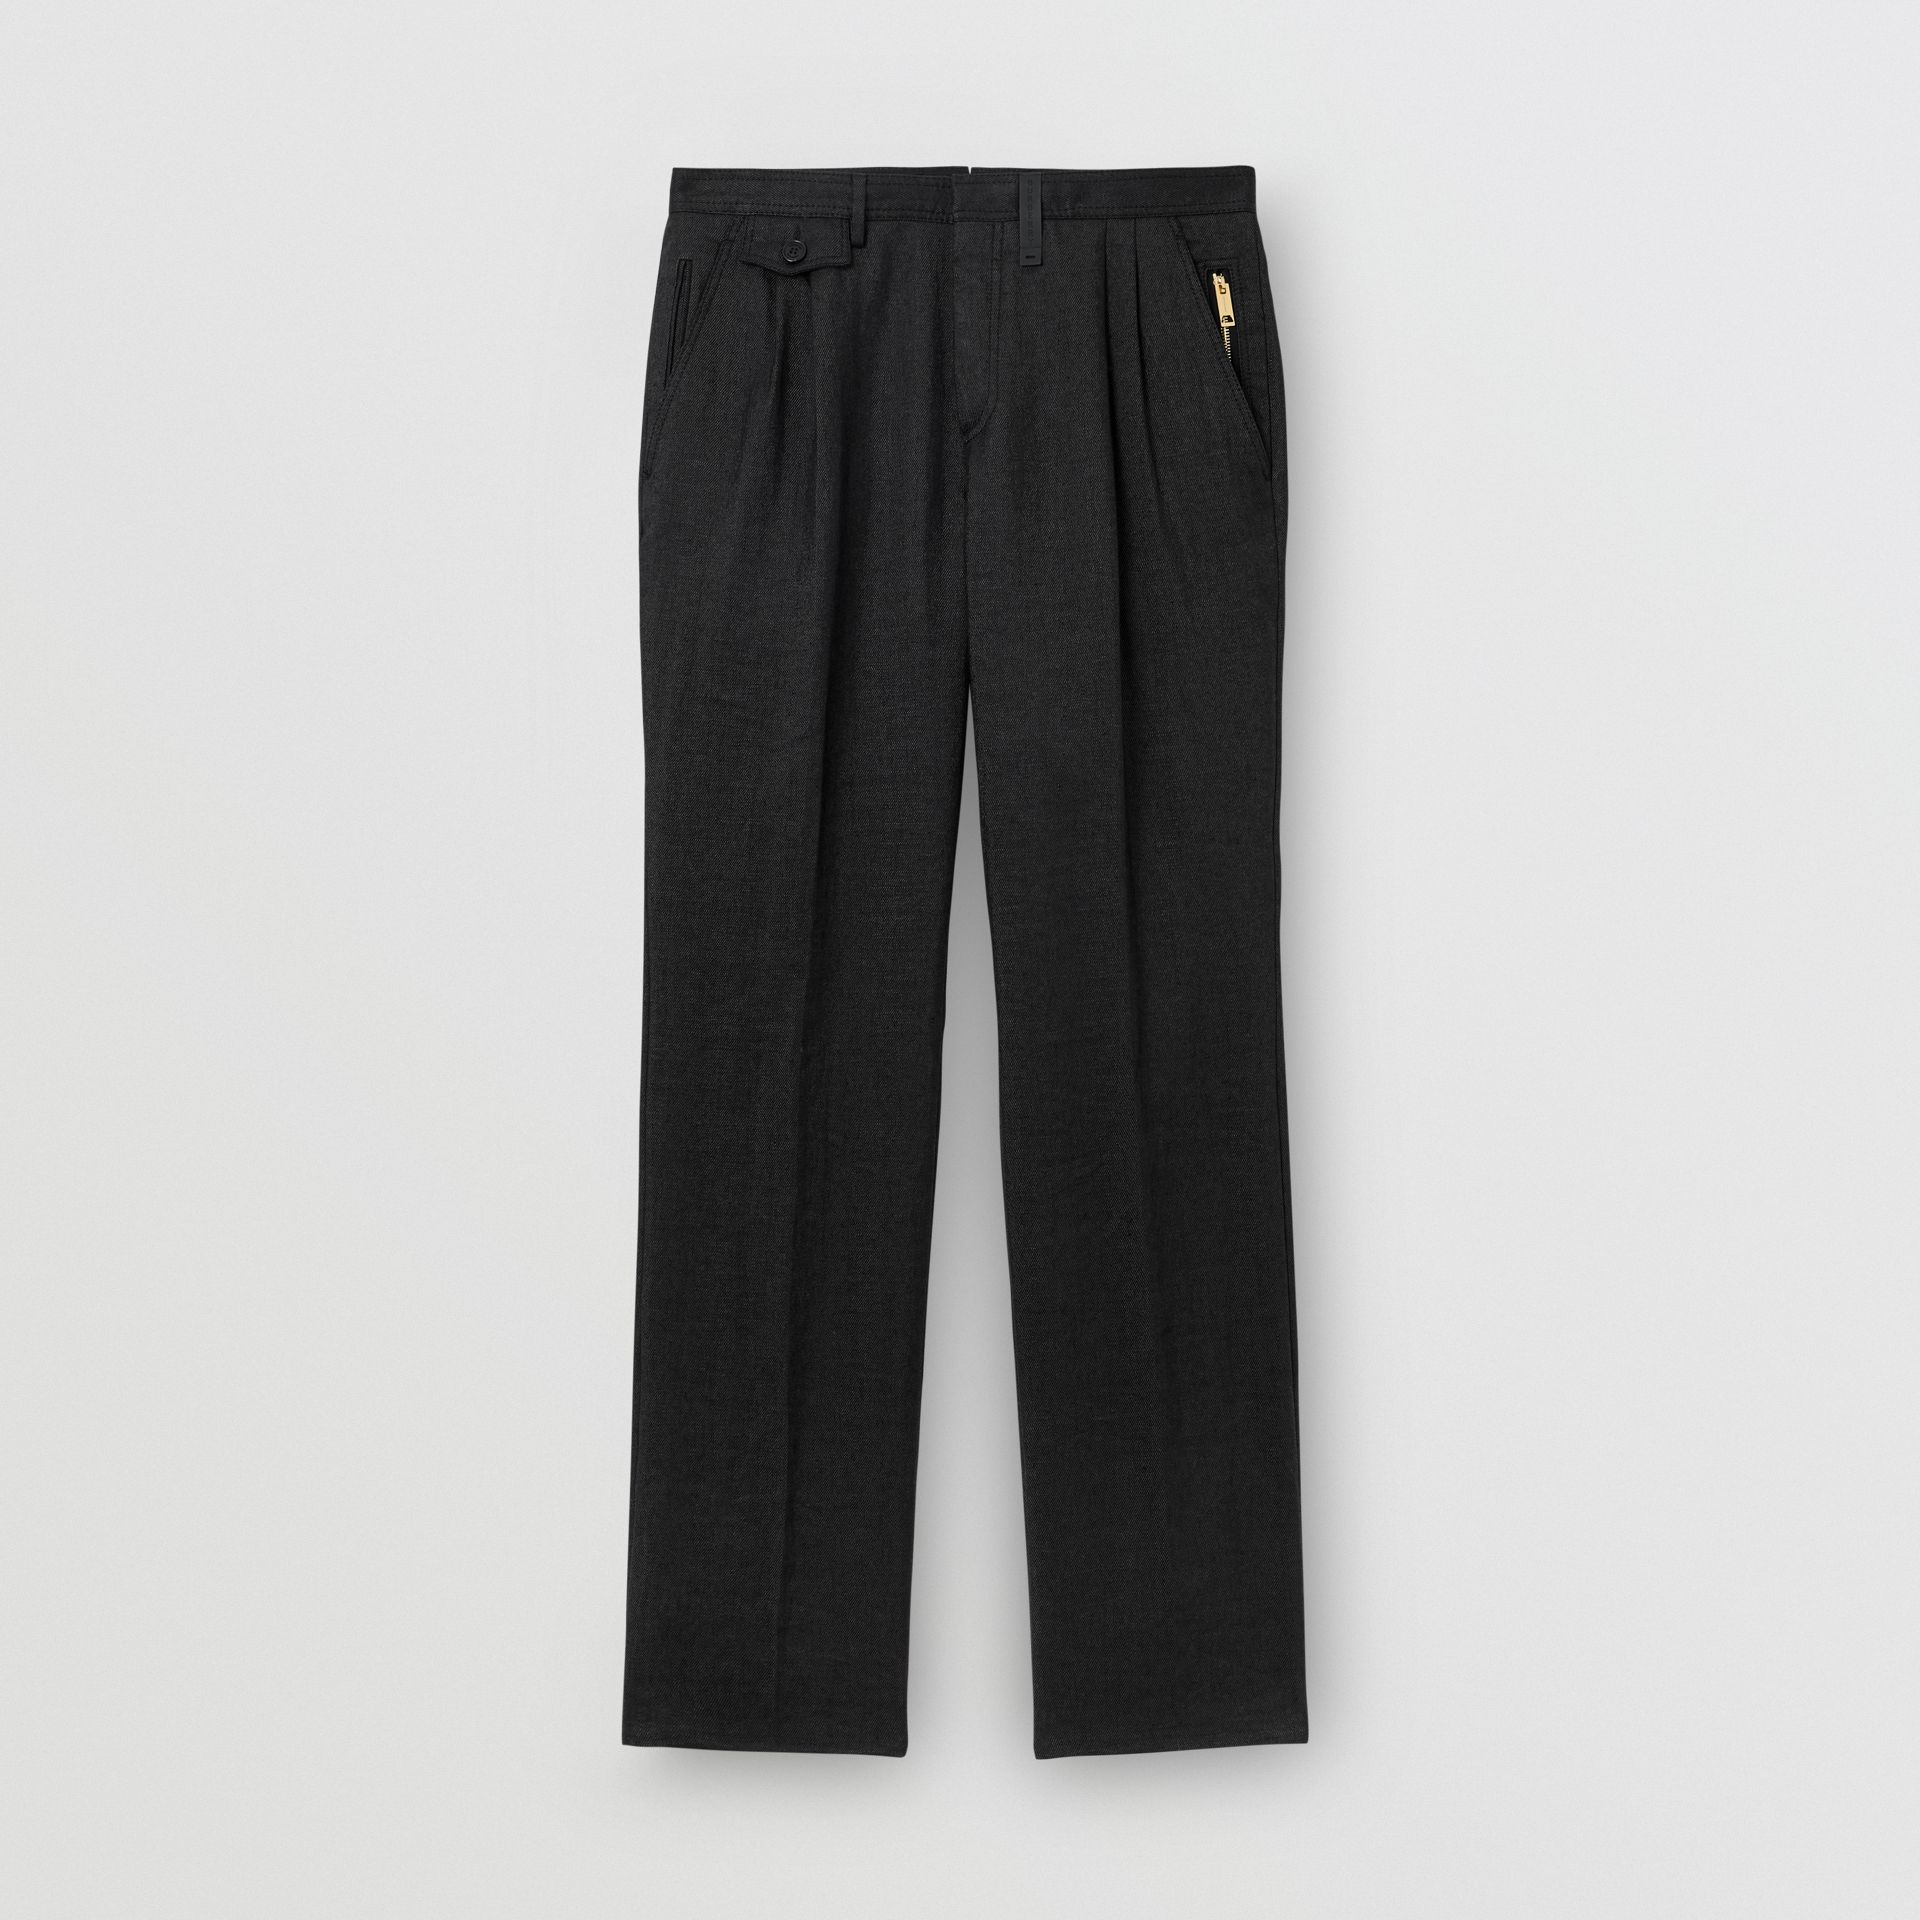 Zip Detail Linen Blend Pleated Trousers in Black - Men | Burberry - gallery image 3